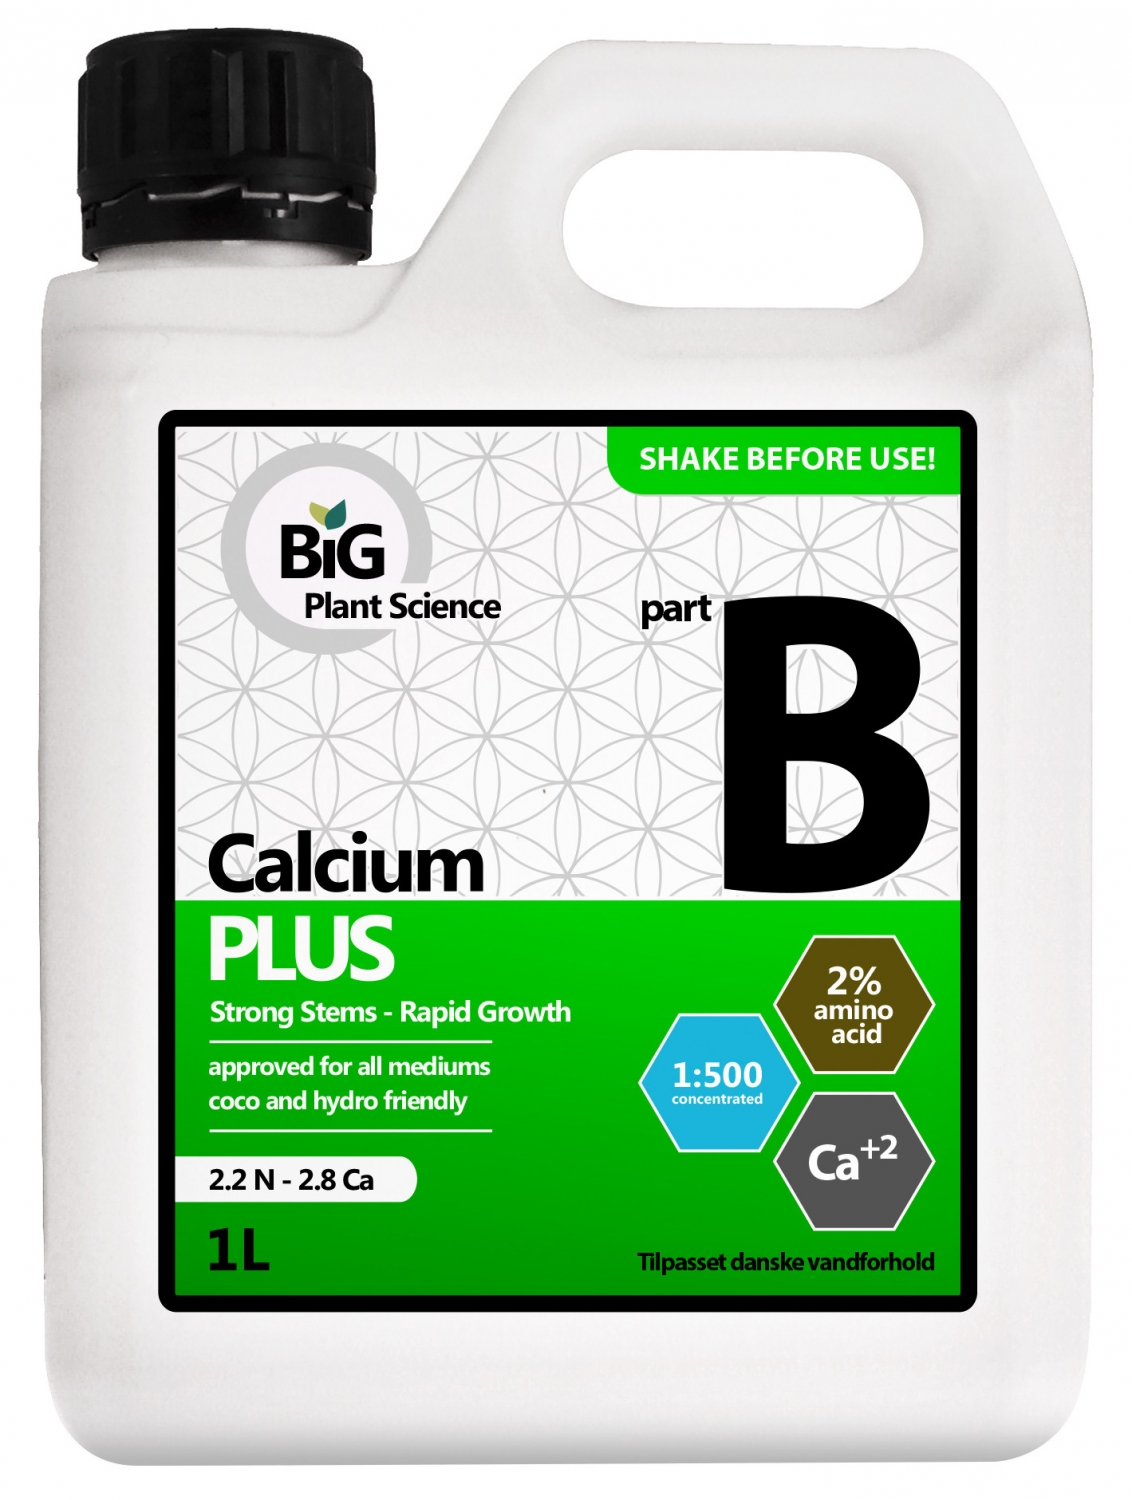 Big Plant Science - Calcium Plus Part B